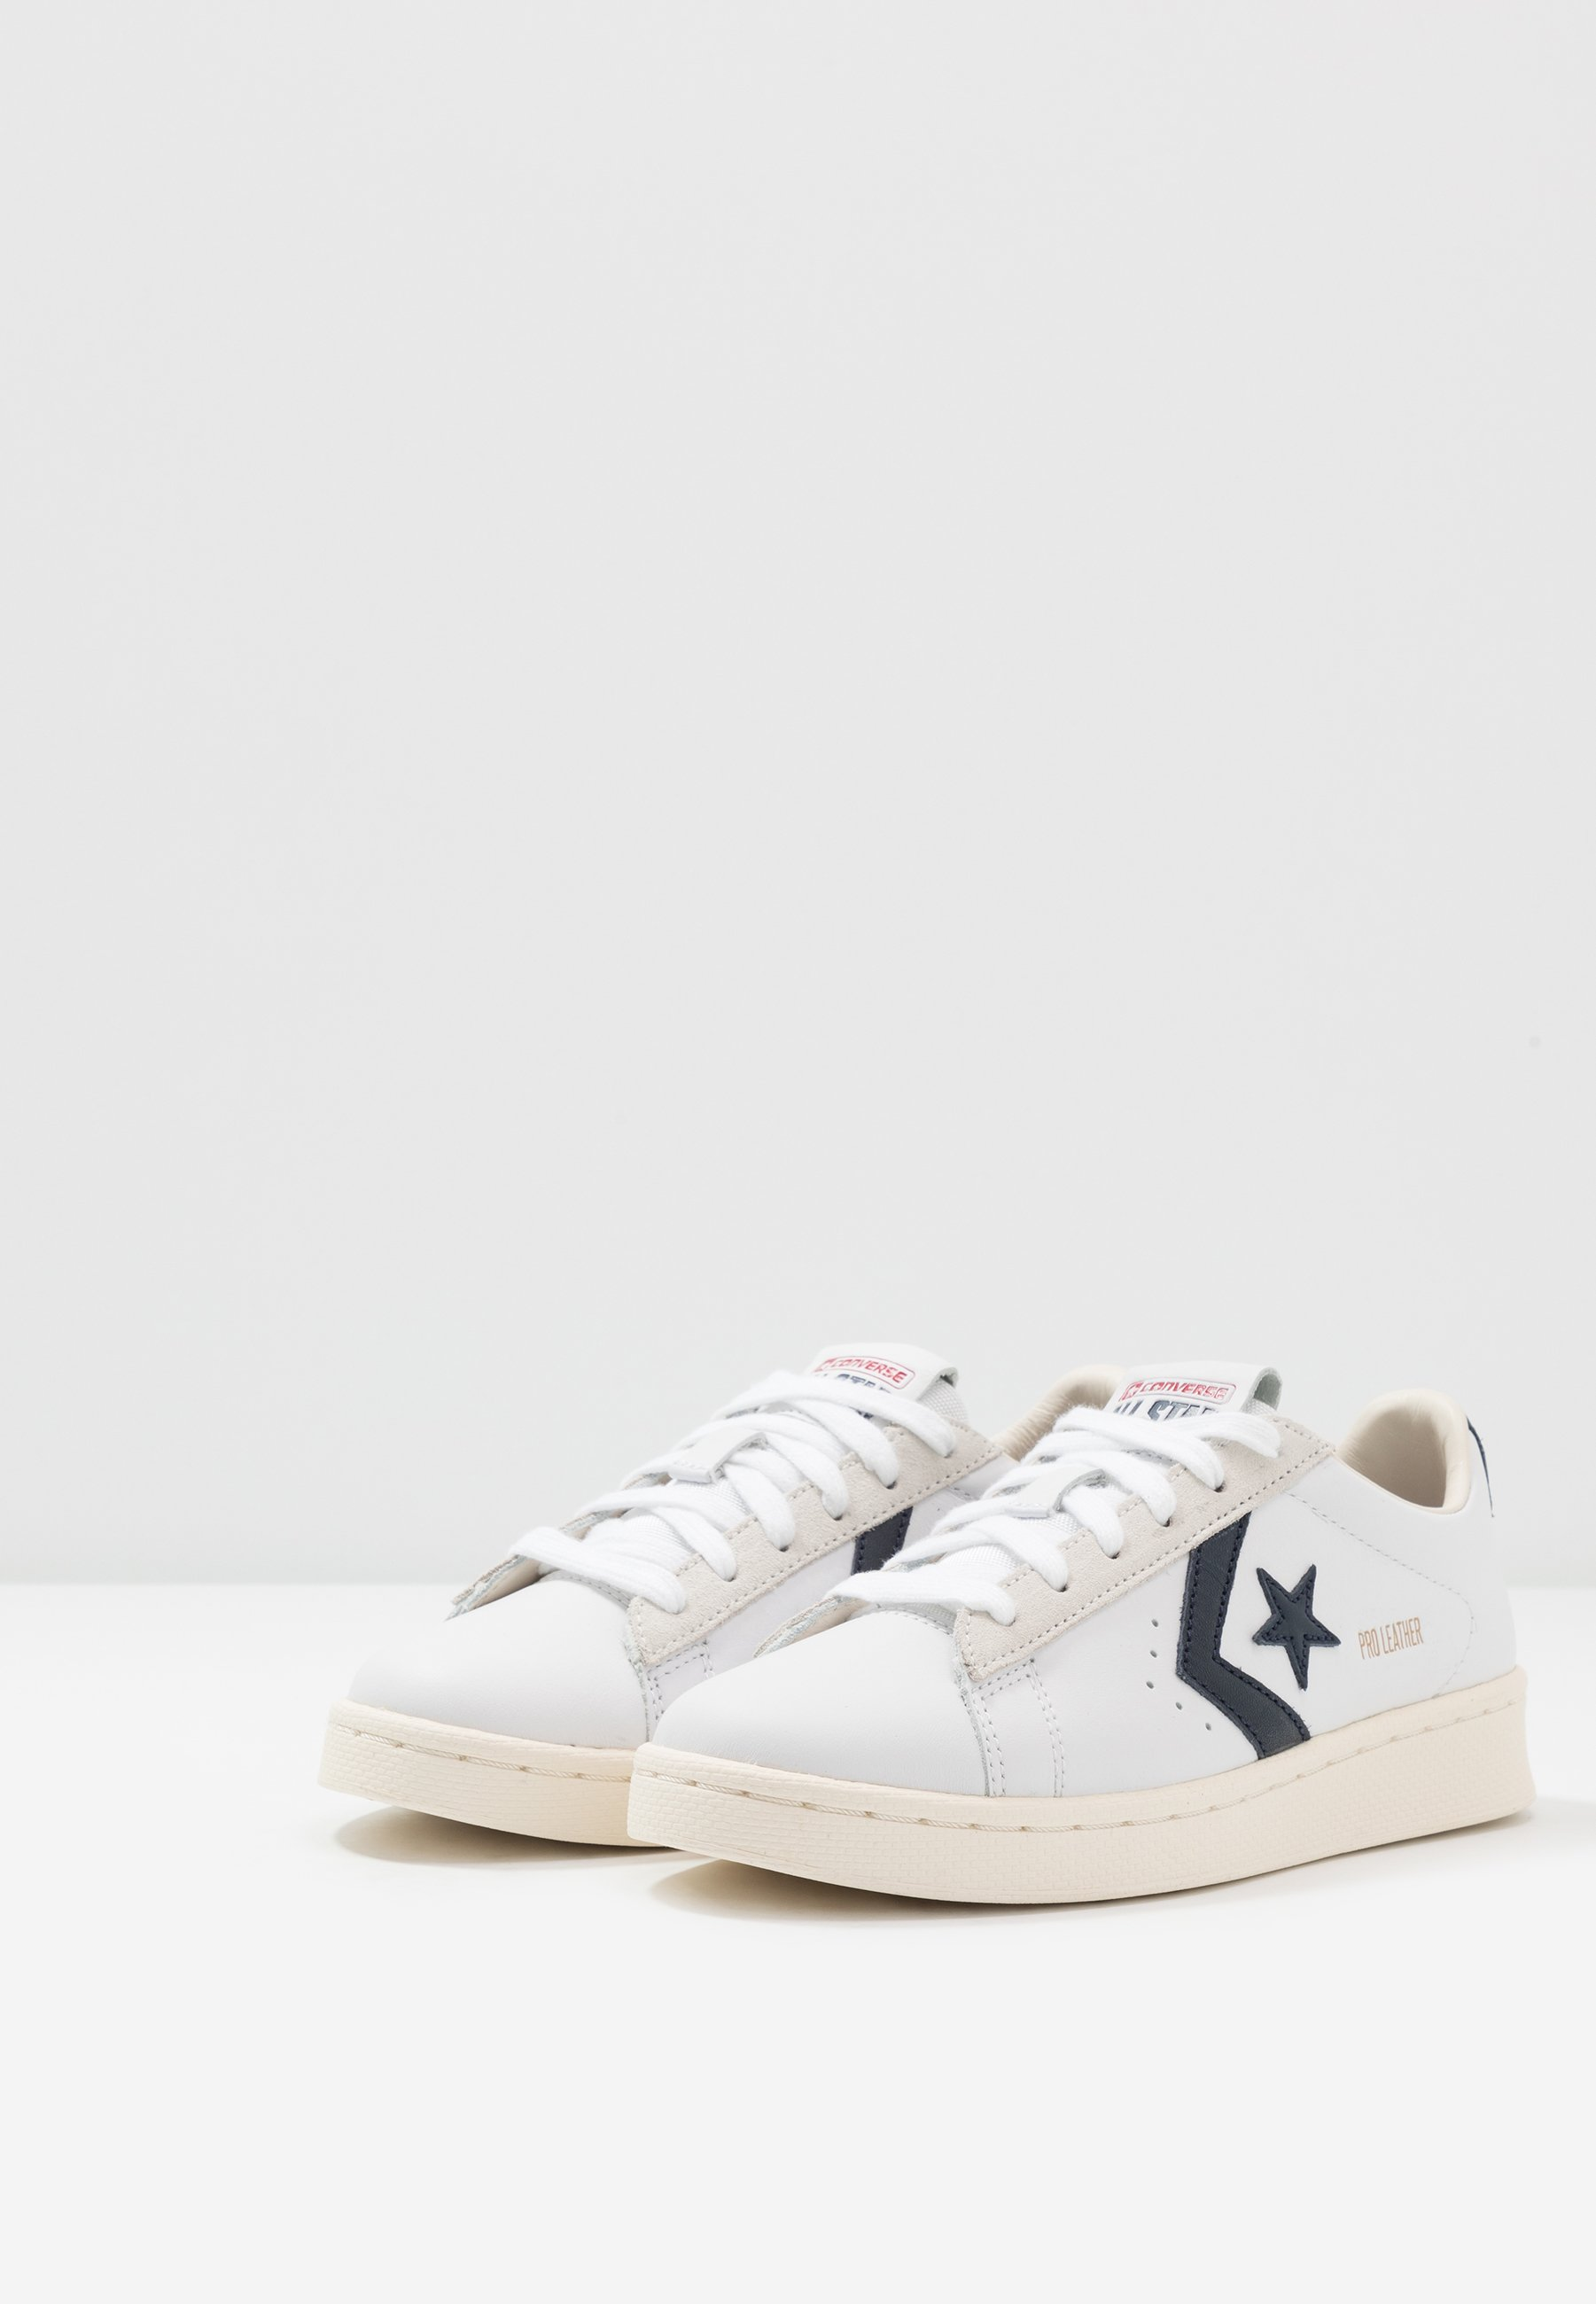 Converse Pro Leather - Sneakers White/obsidian/egret